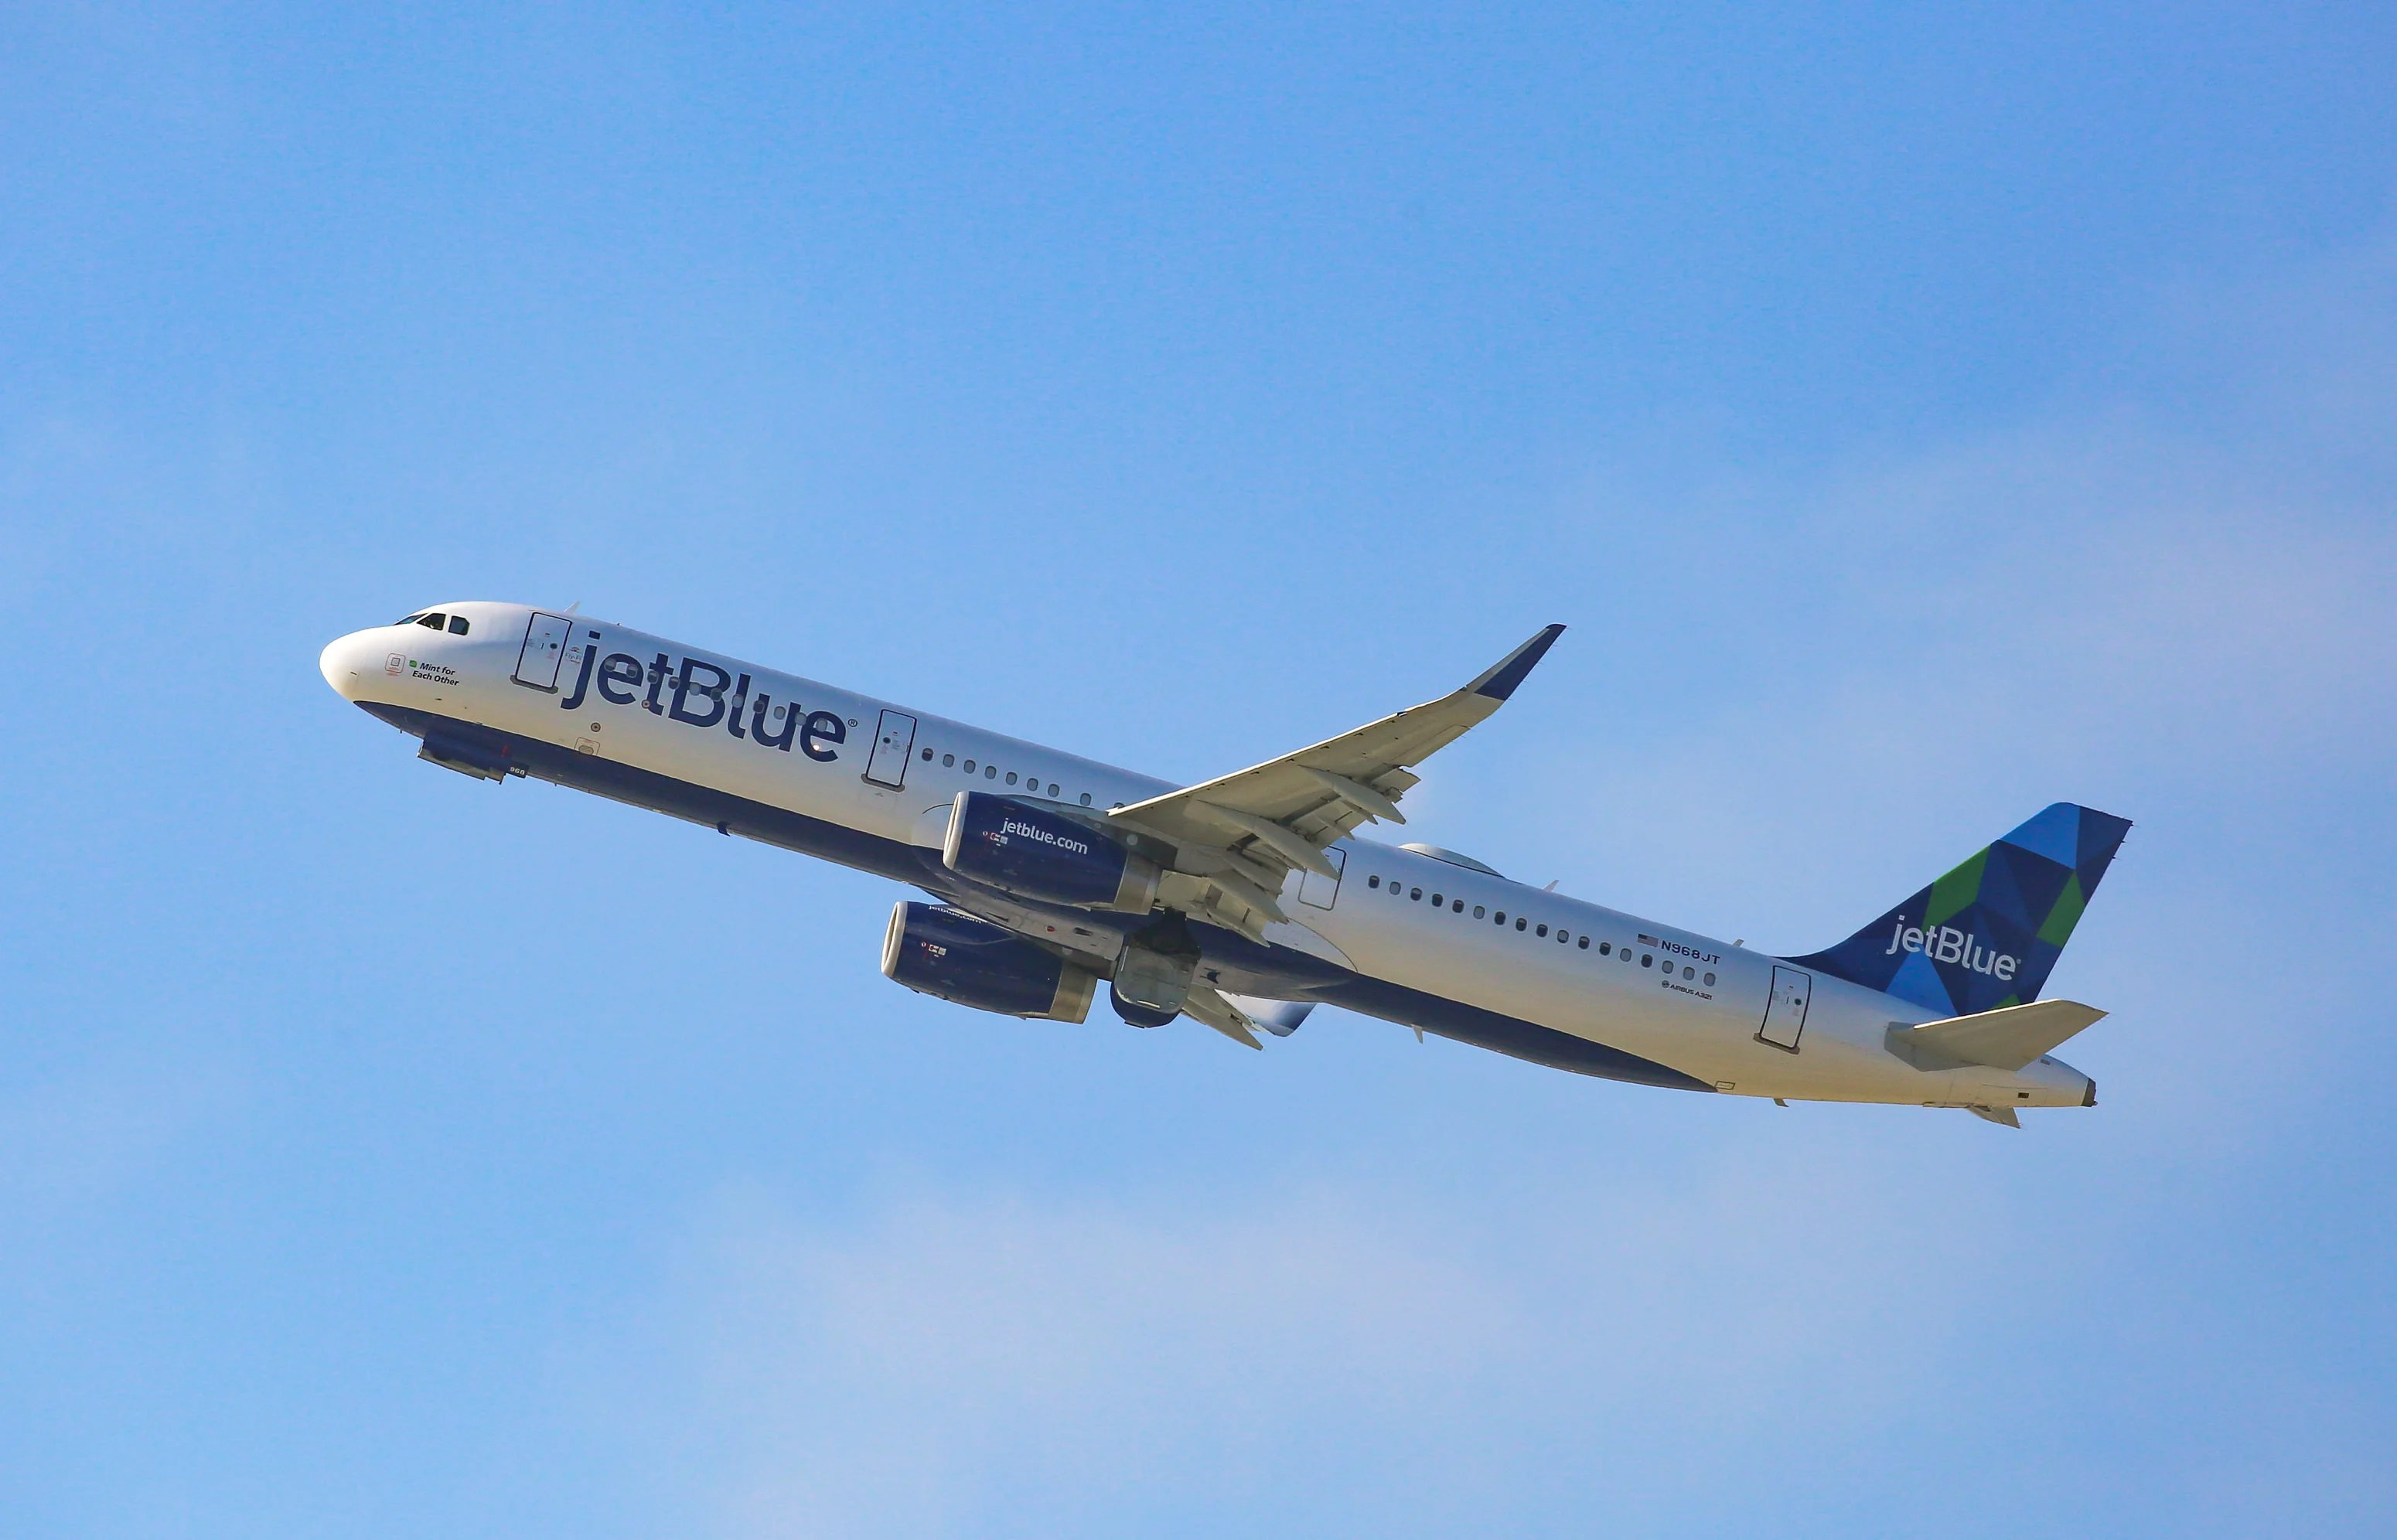 Which London Airport Will JetBlue Fly To?